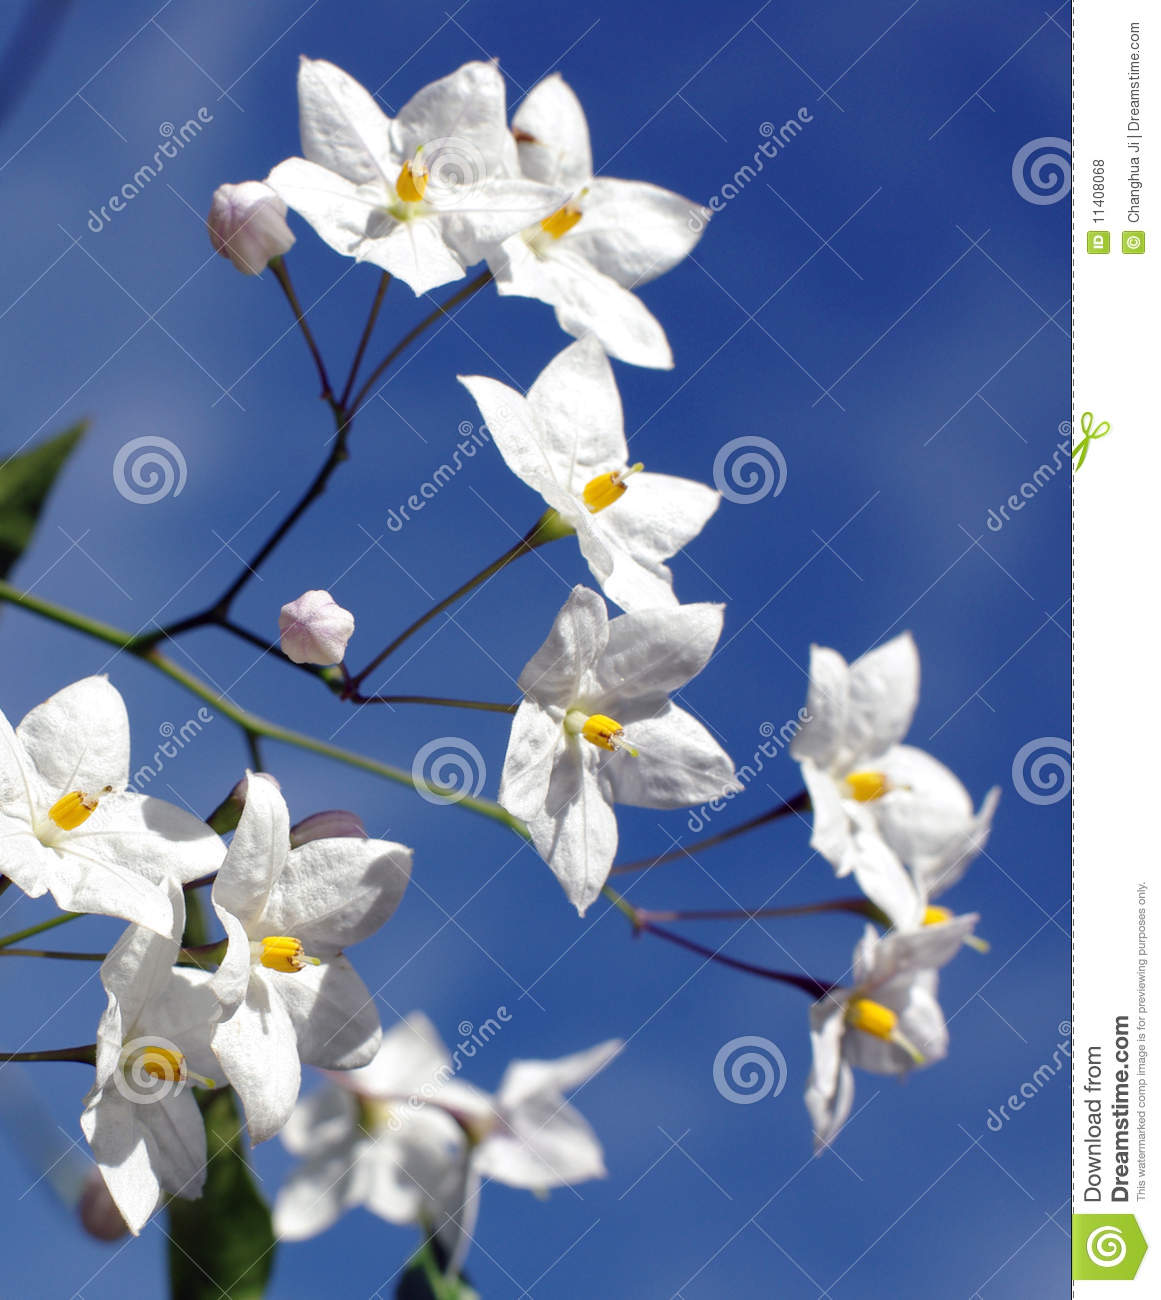 Star Shaped White Flowers Stock Photo Image Of Blue 11408068